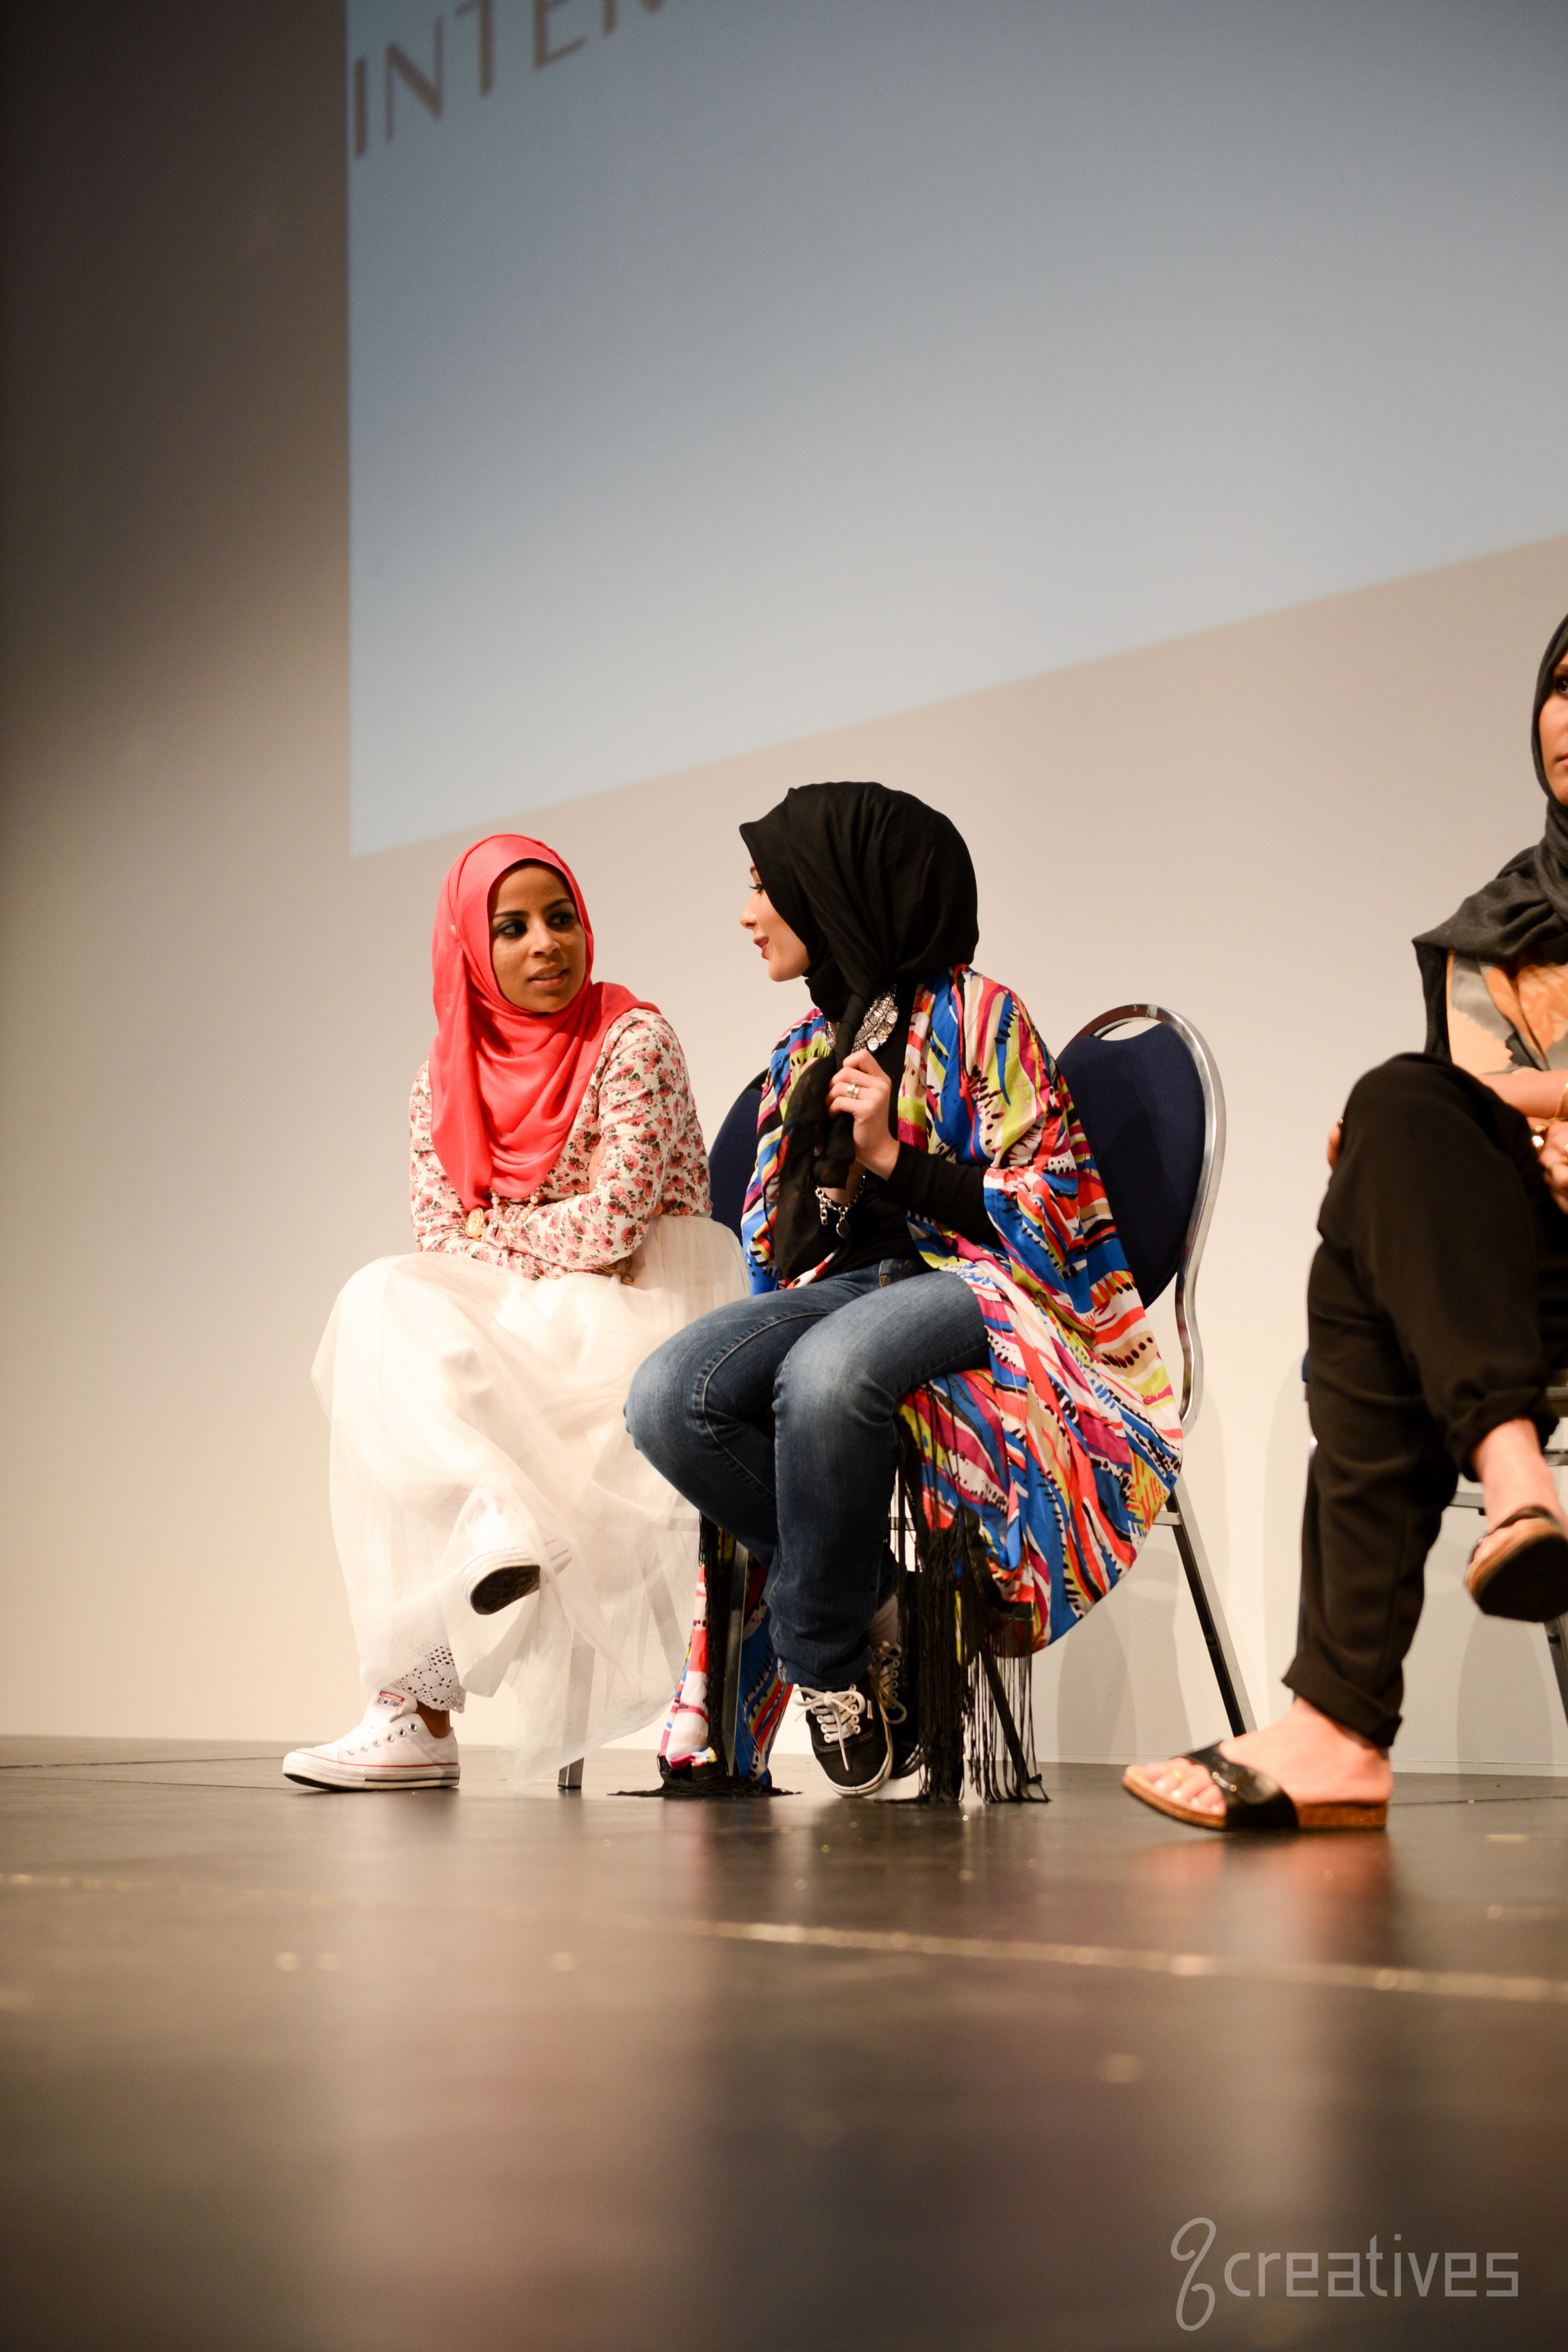 IMFDF 2014 - Bloggers - Retouched-9